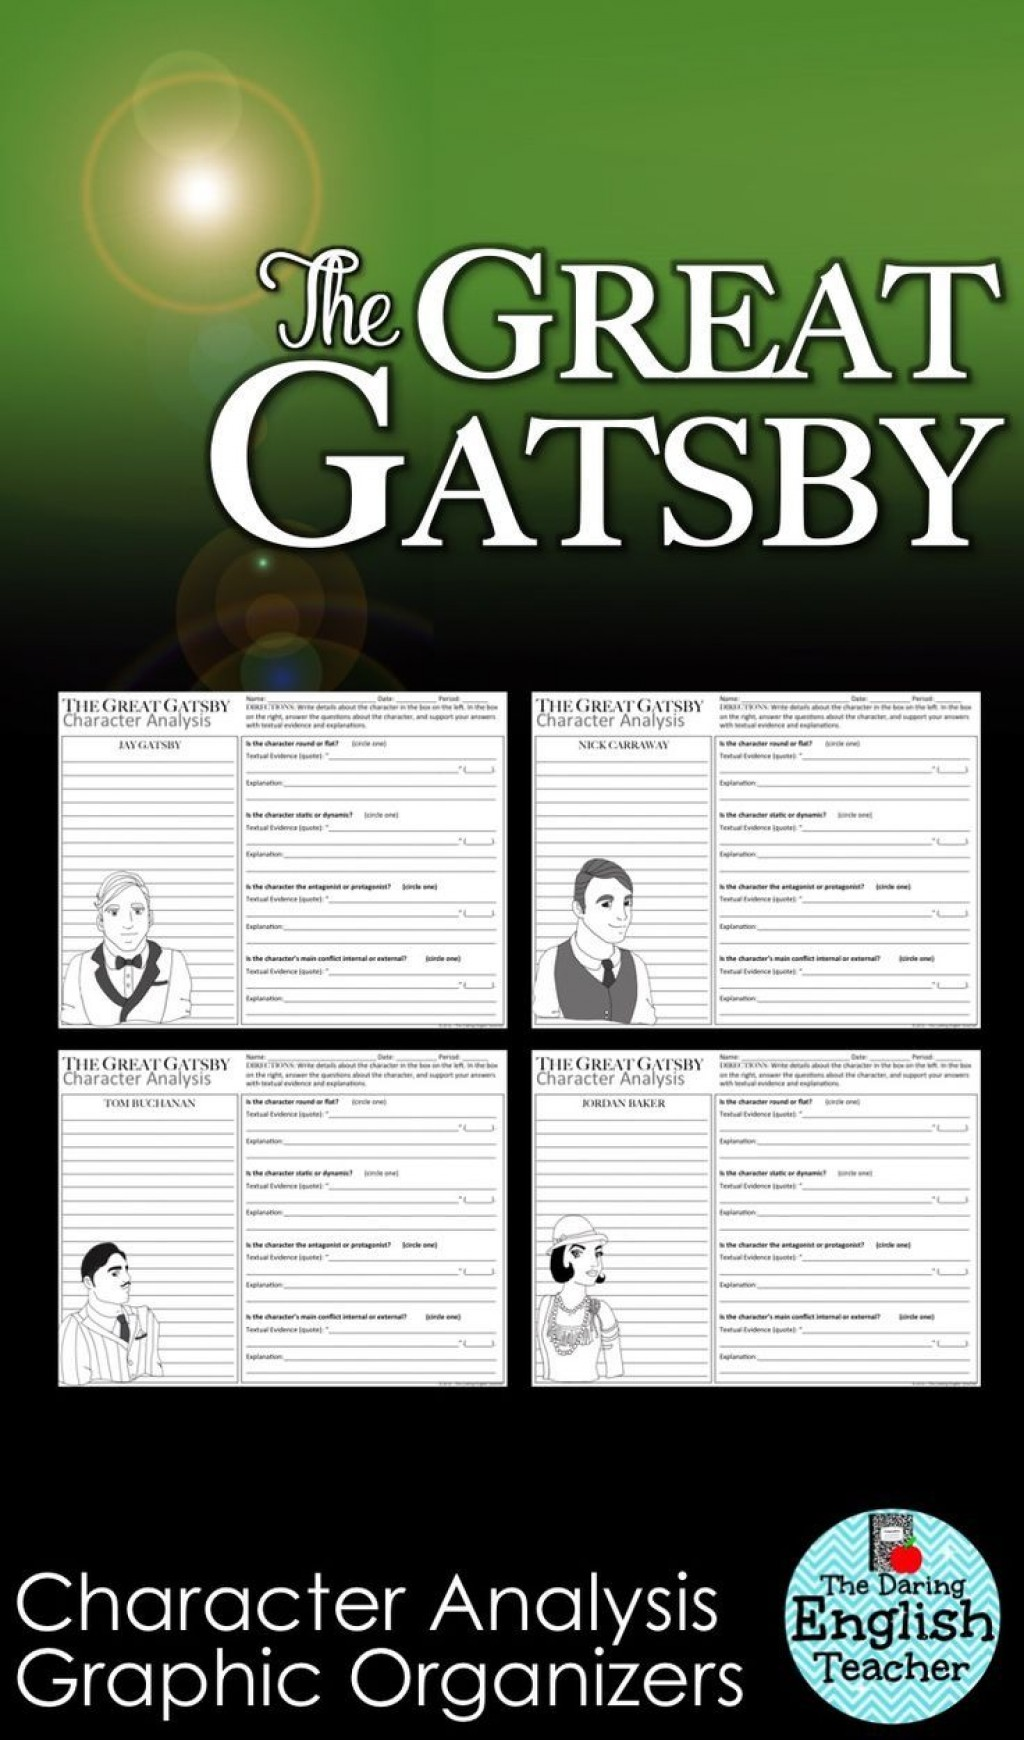 019 The Great Gatsby Essay Topics Example Exceptional Literary Question Chapter 1 Large